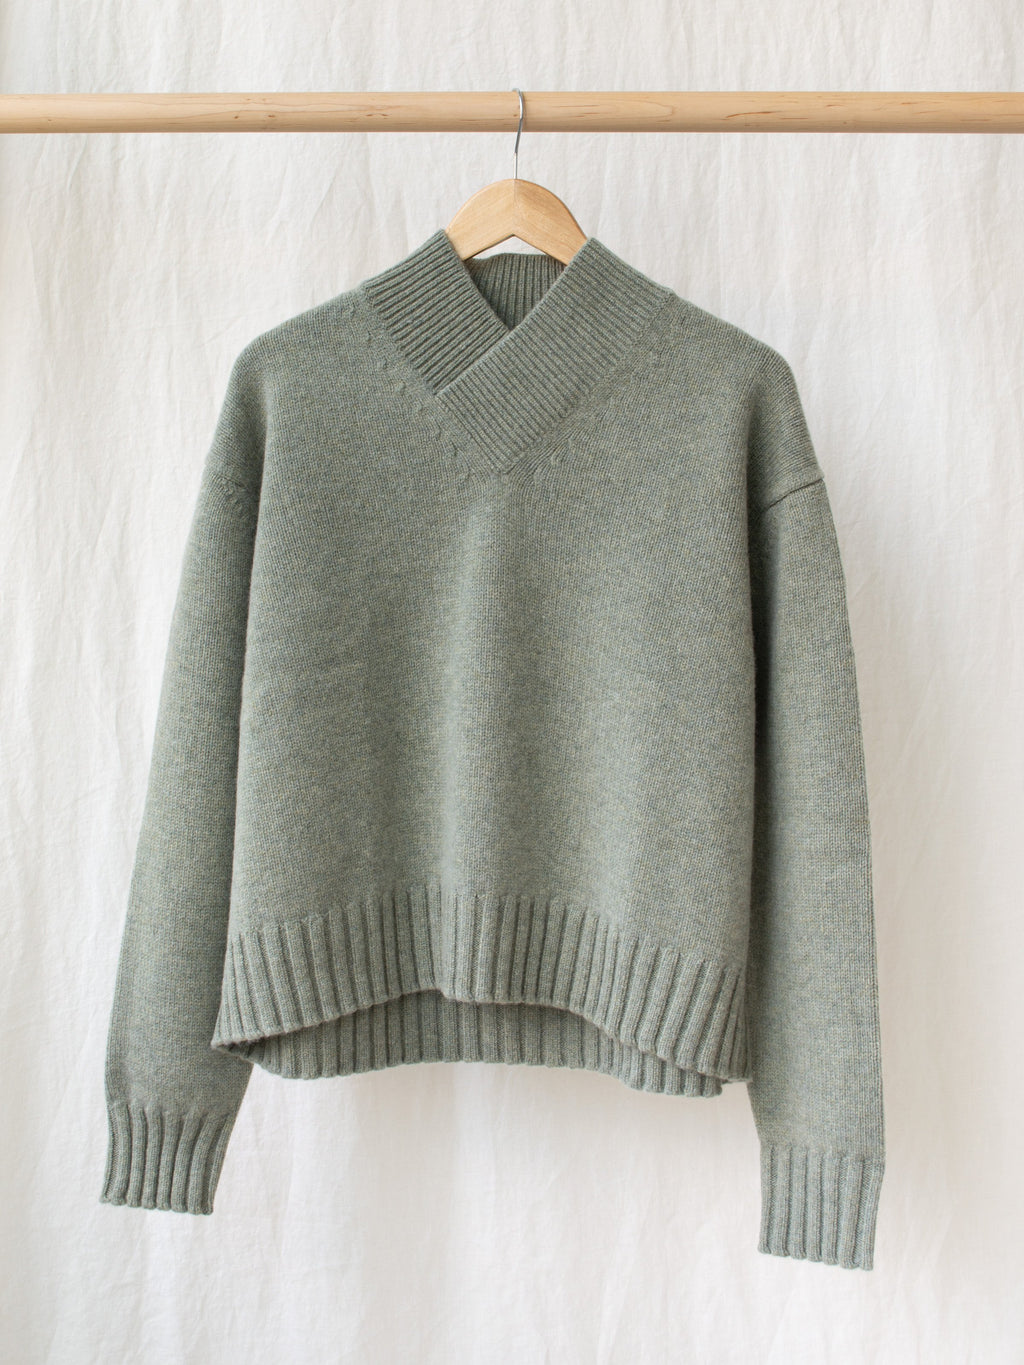 Namu Shop - Studio Nicholson British Lambswool Collar Knit - Matcha